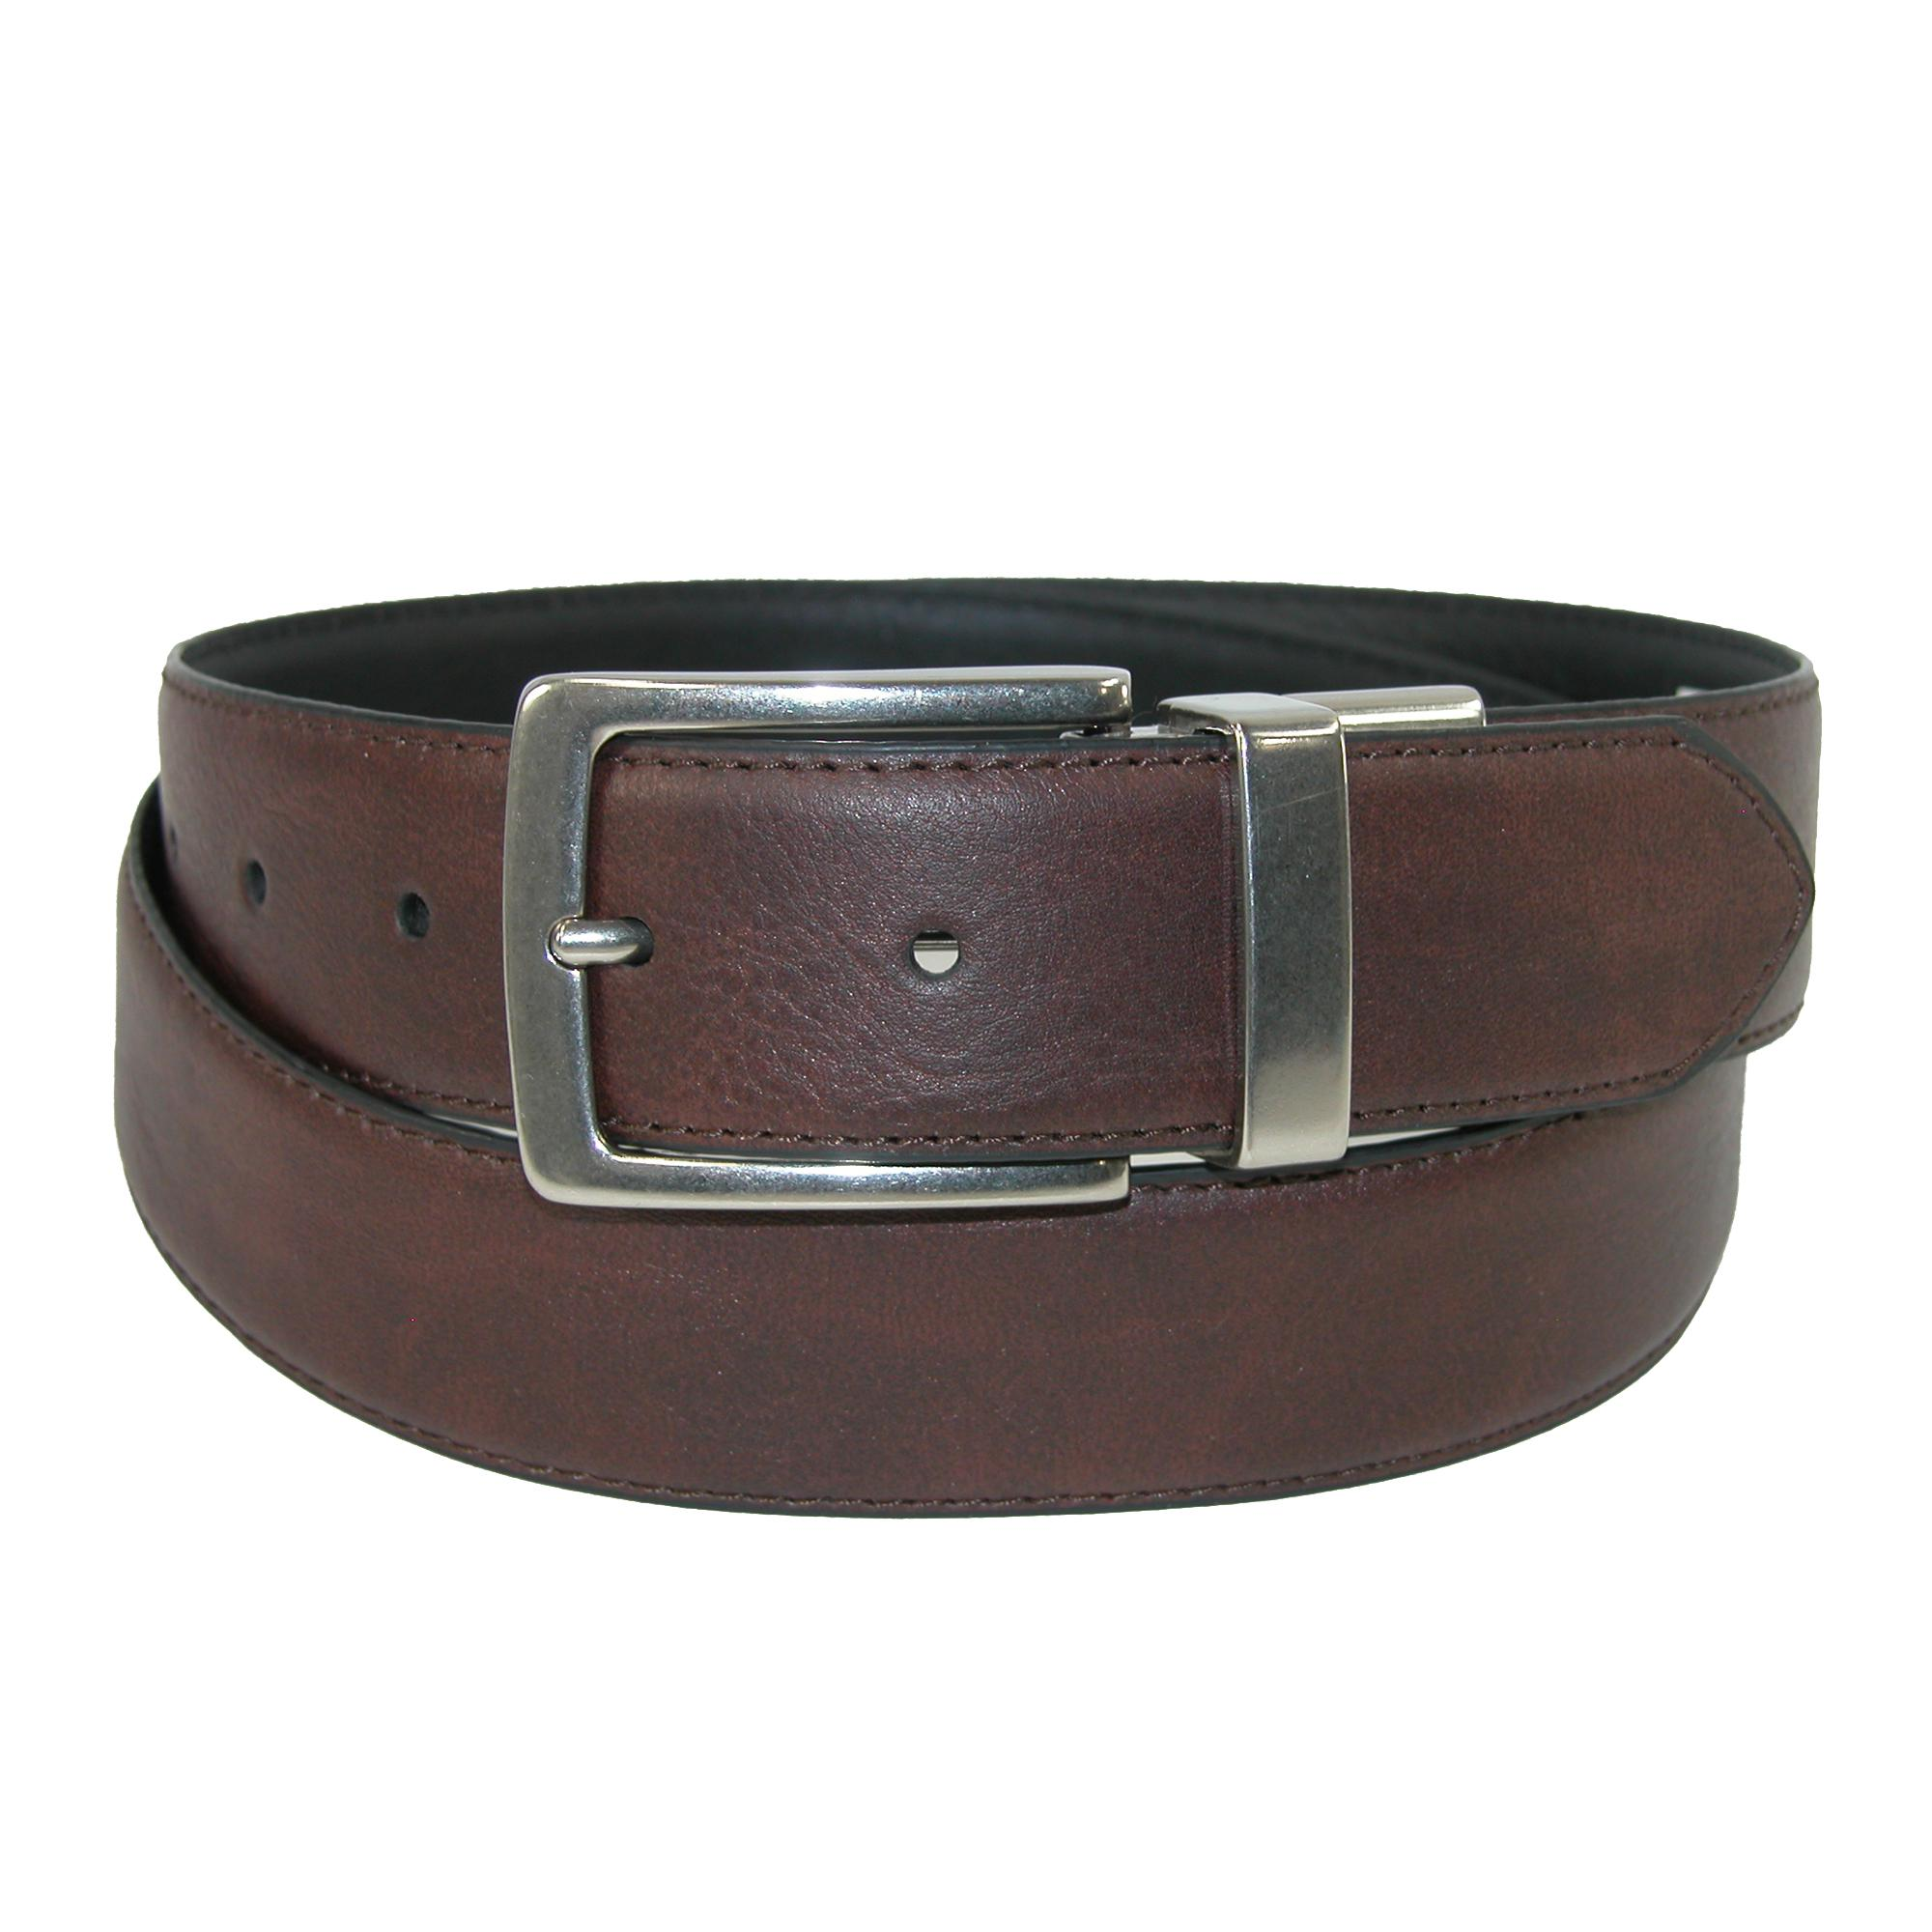 Levis Mens Leather Reversible Belt With Feathered Edge